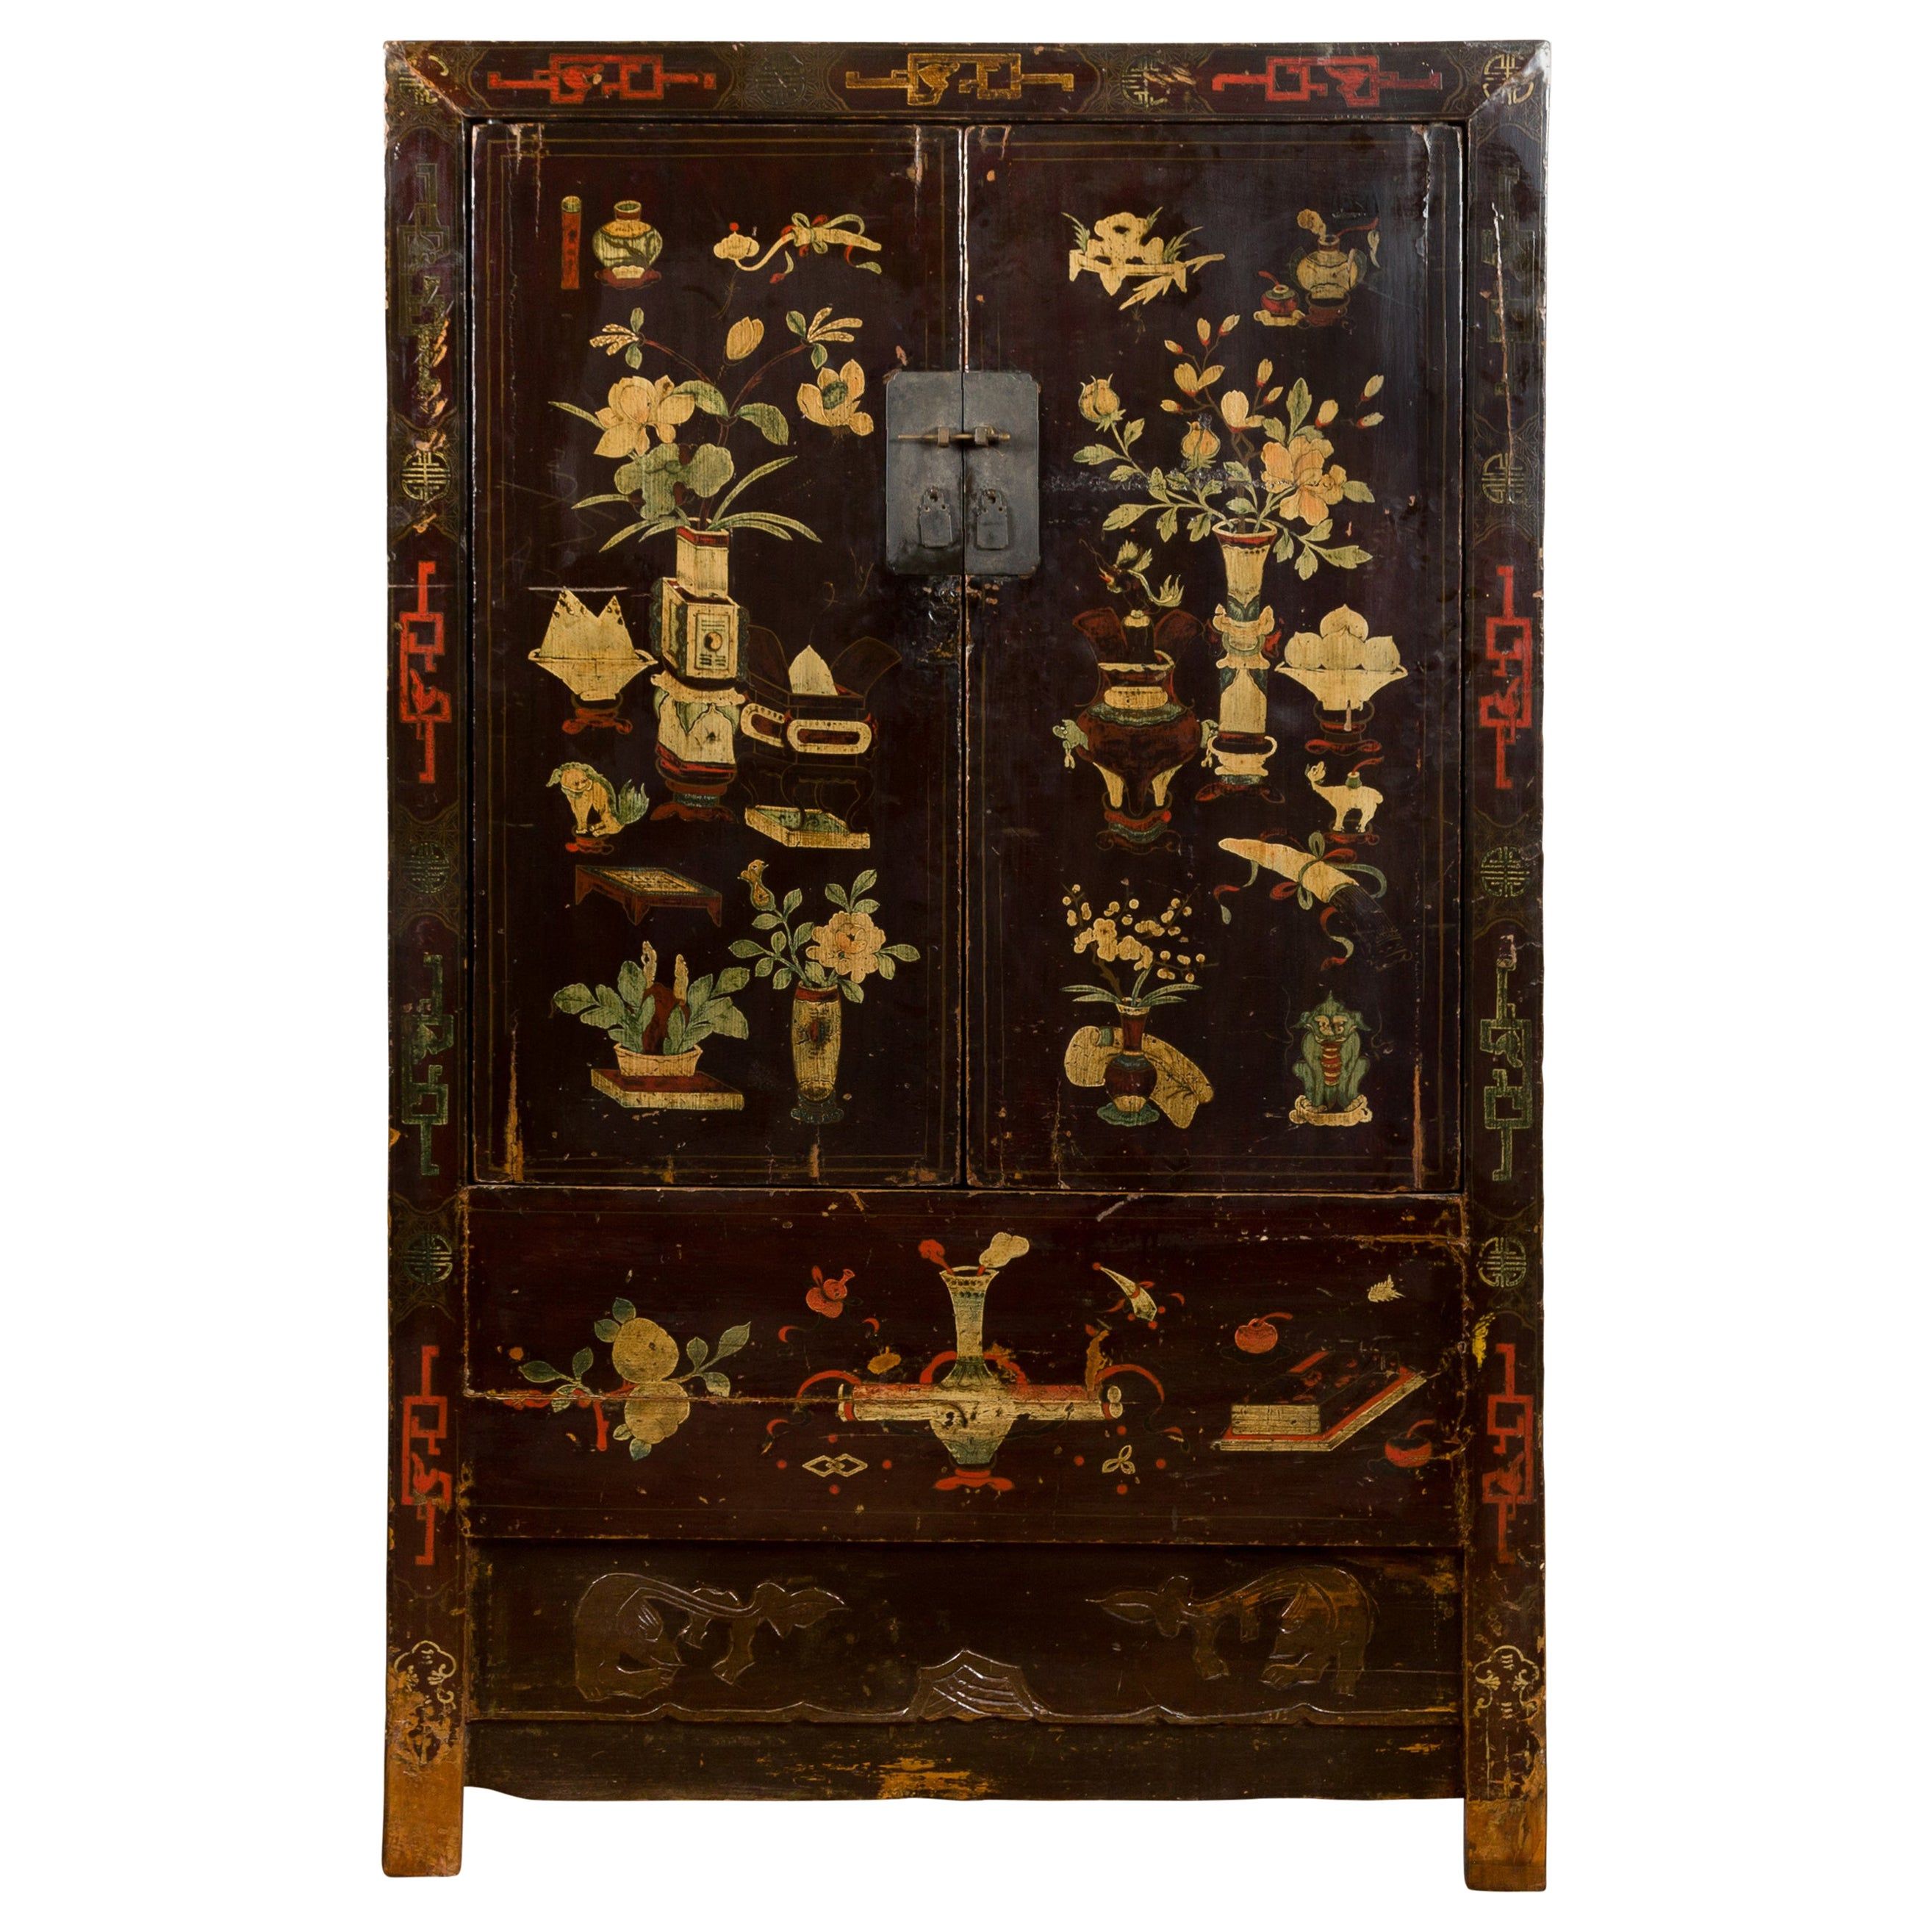 Chinese Brown Lacquered Qing Dynasty 19th Century Cabinet with Painted Motifs